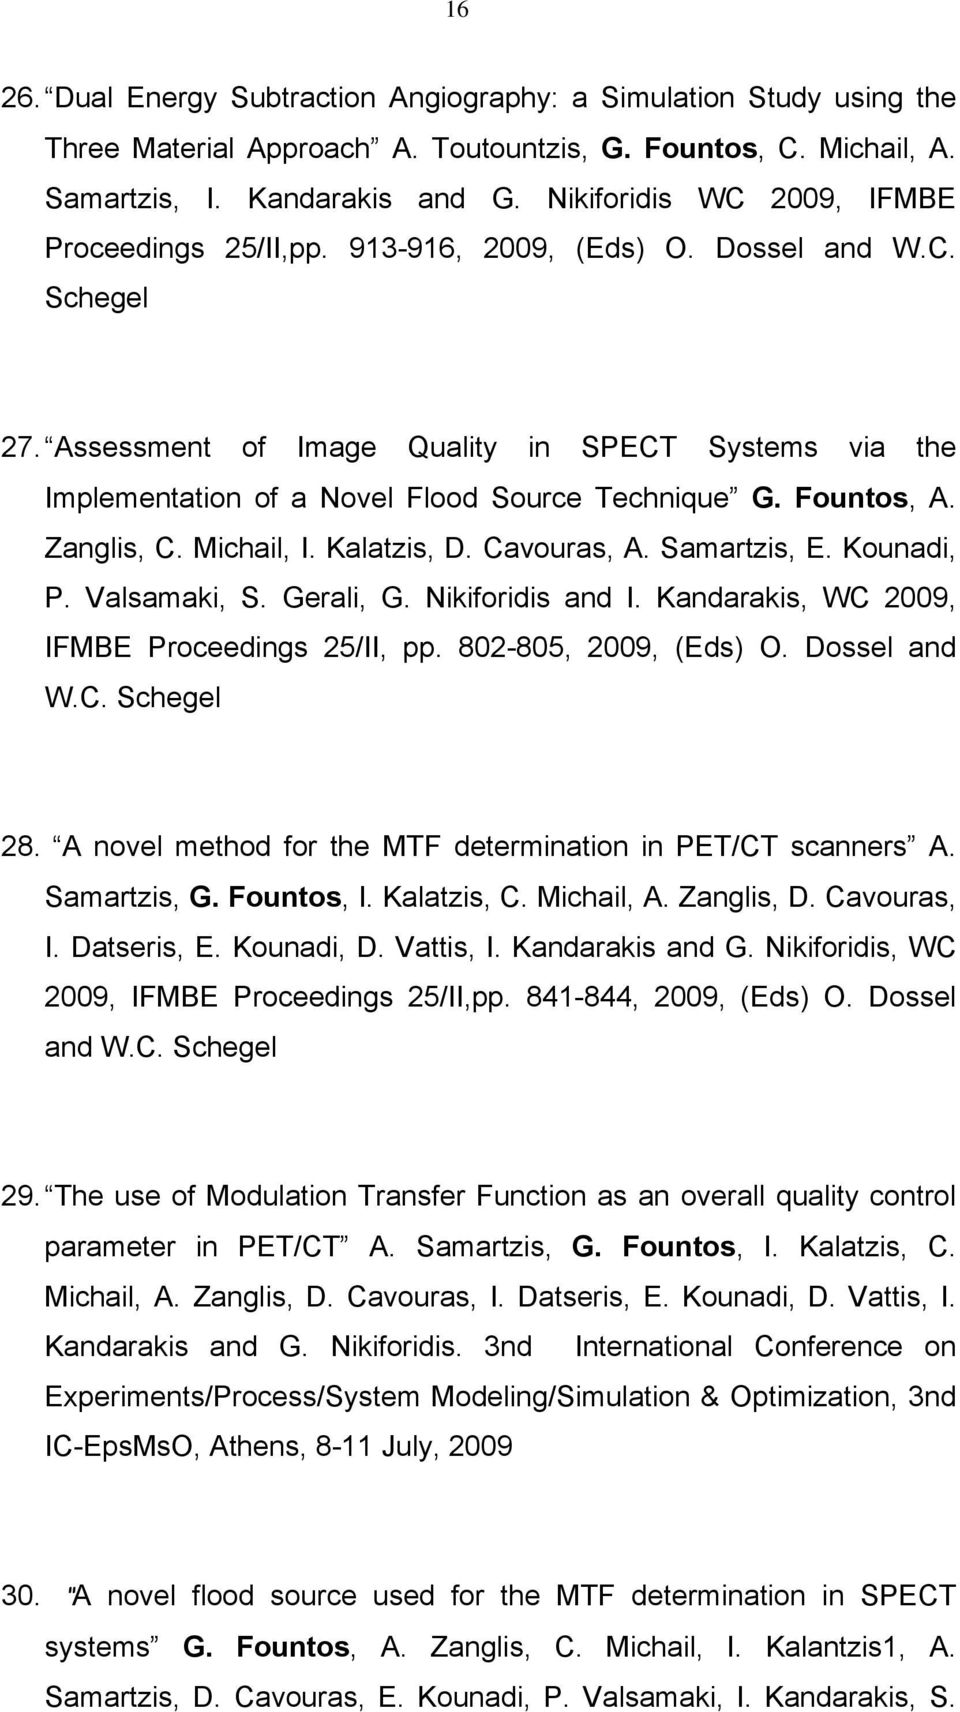 Assessment of Image Quality in SPECT Systems via the Implementation of a Novel Flood Source Technique G. Fountos, A. Zanglis, C. Michail, I. Kalatzis, D. Cavouras, A. Samartzis, E. Kounadi, P.